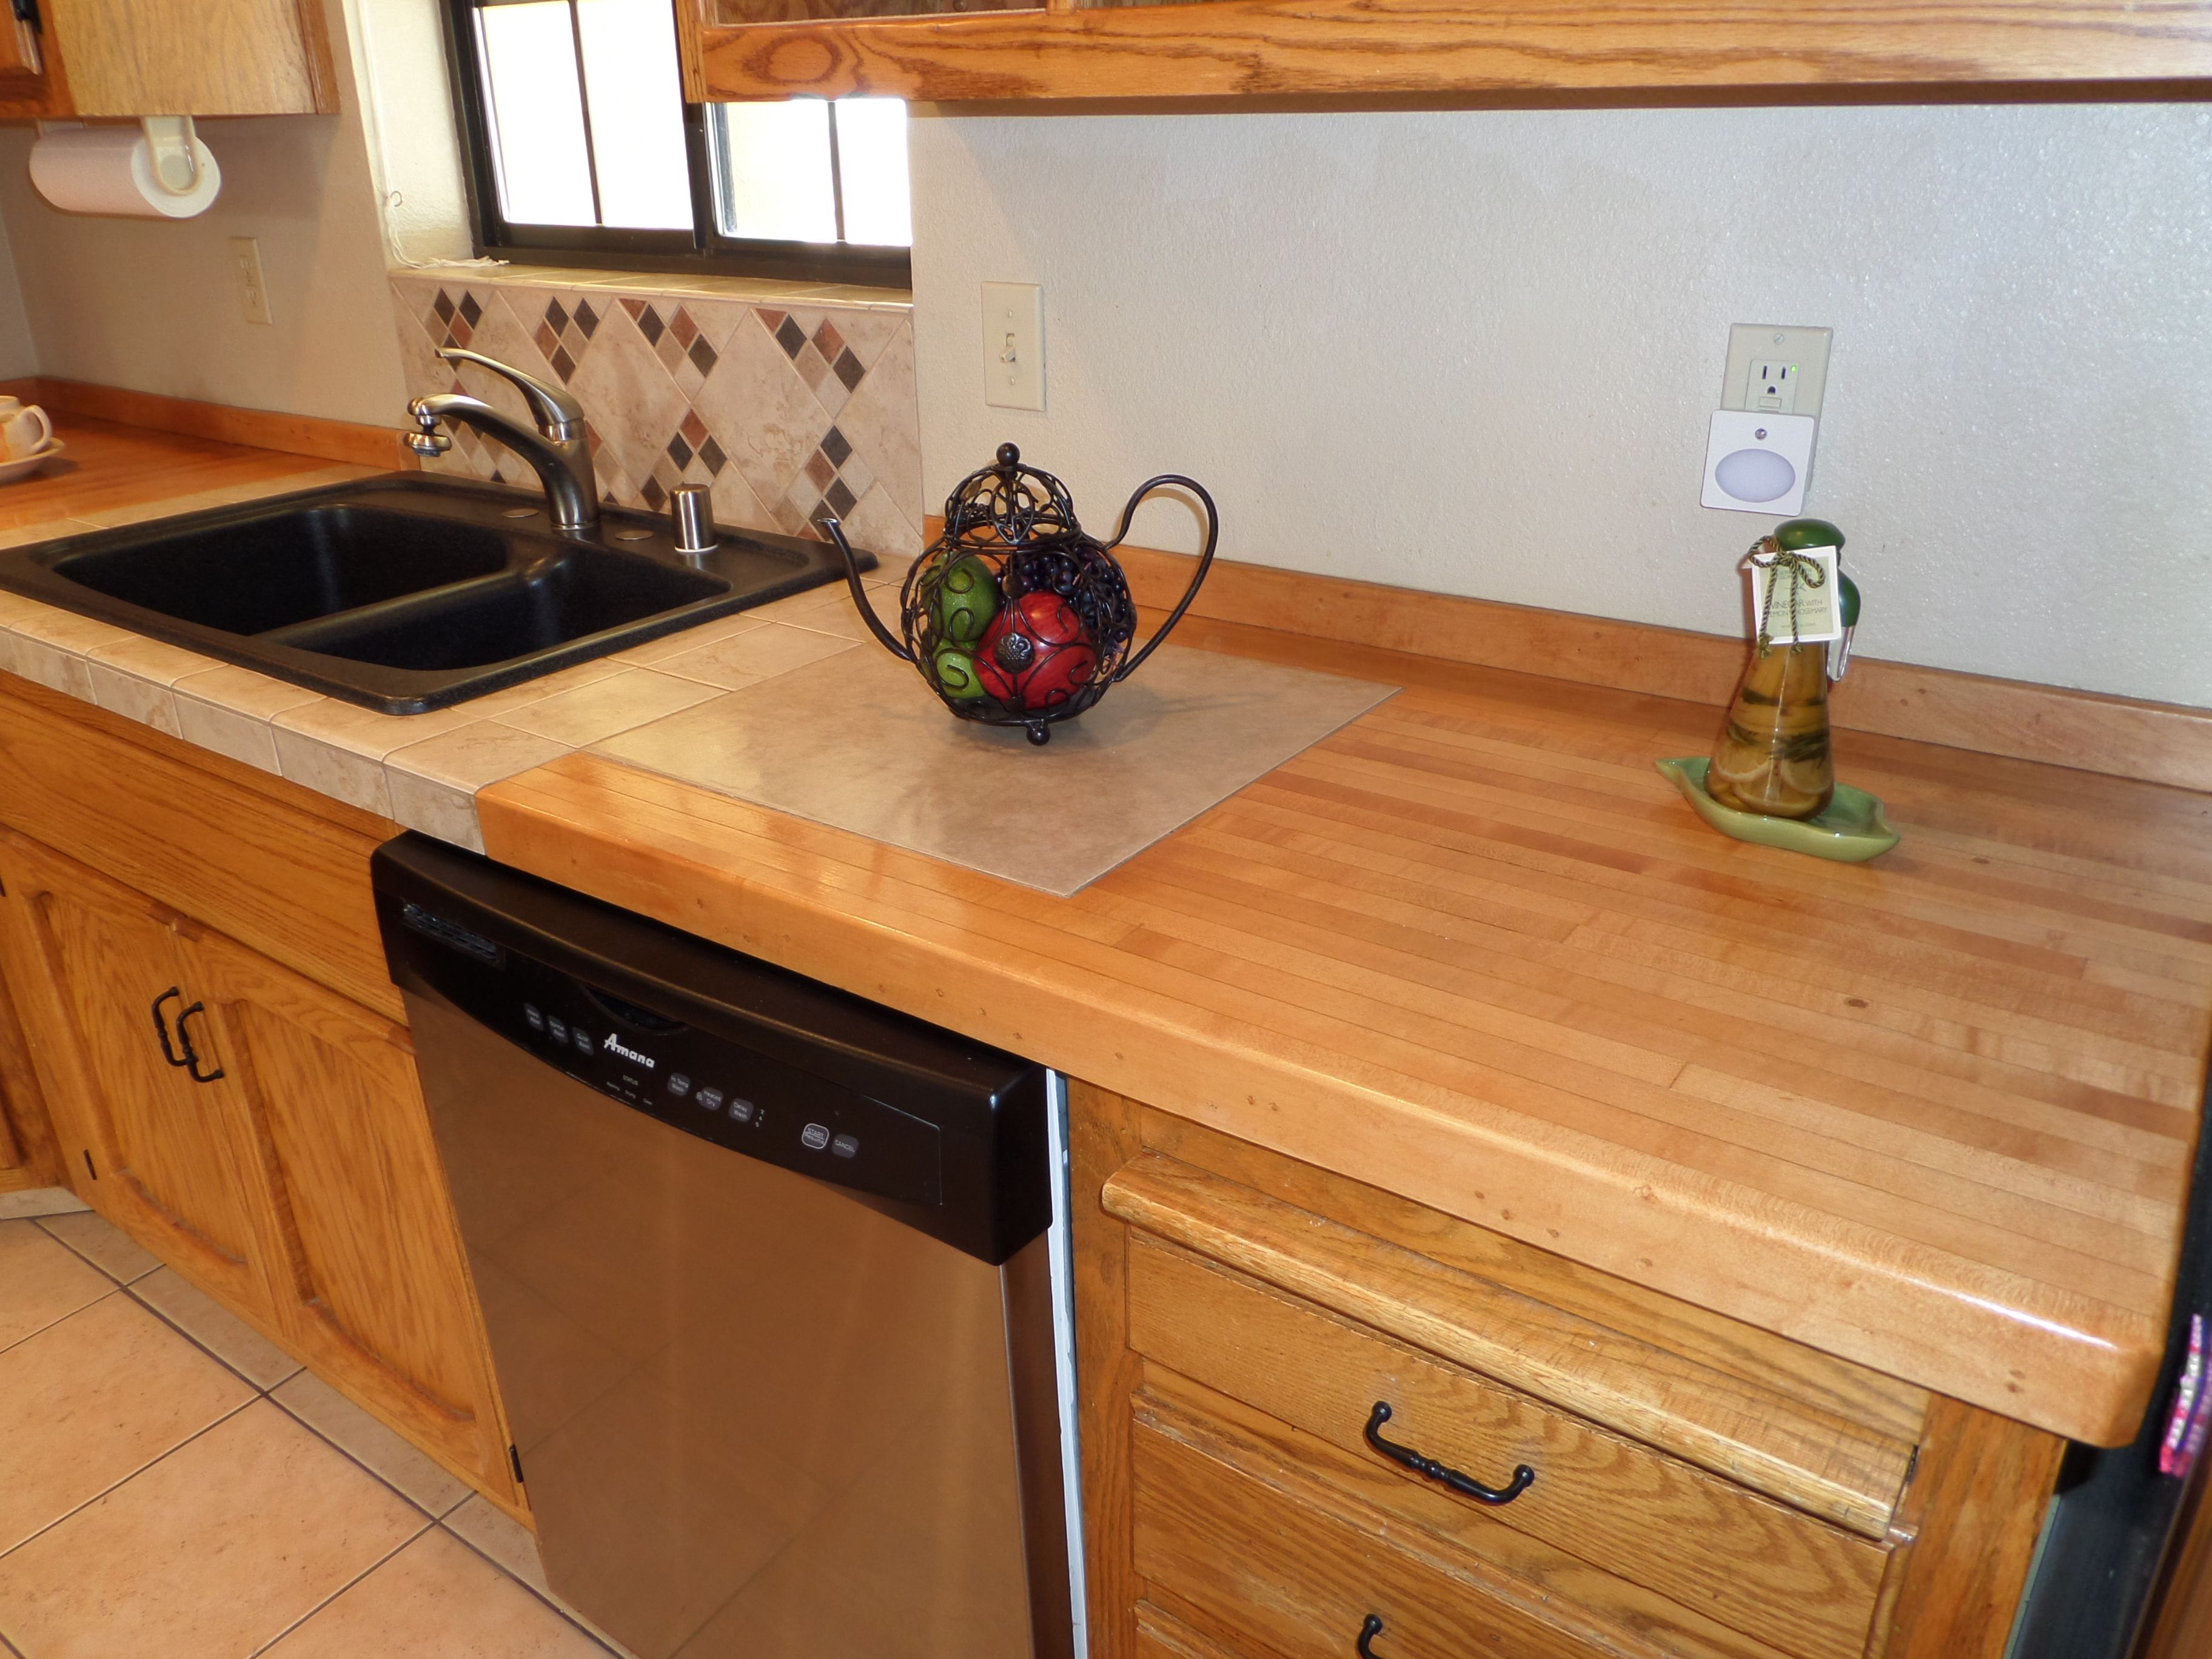 Refurbished Countertops Using Old Rock Marble Bowling Alley Material What A Bright Idea